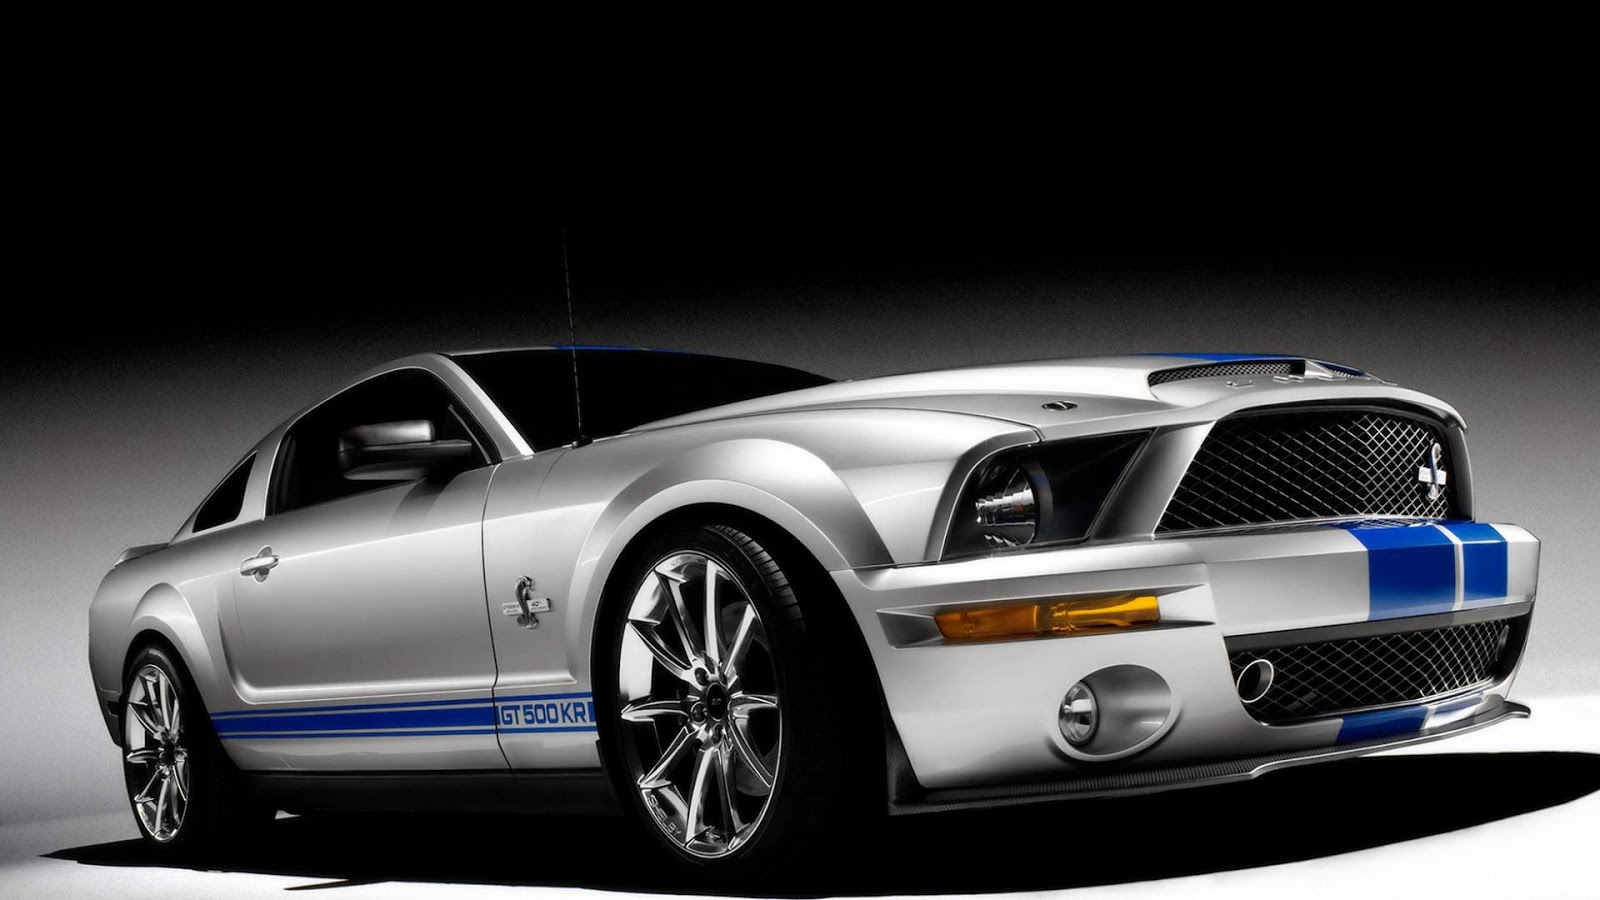 Silver Blue Car Best Car HD Wallpaper